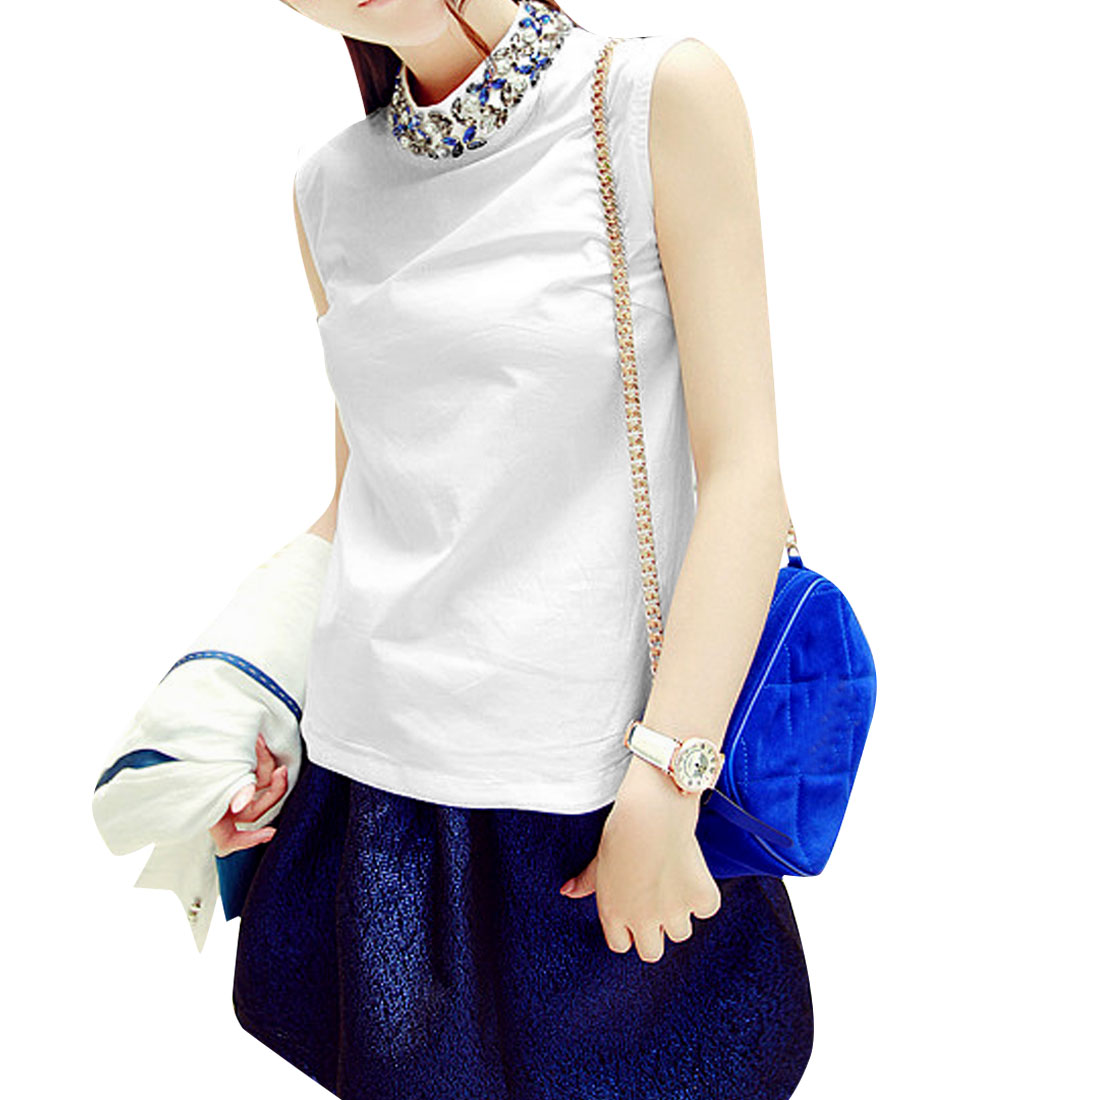 Women Style Stand Collar Sleeveless Design Casual Blouse White S